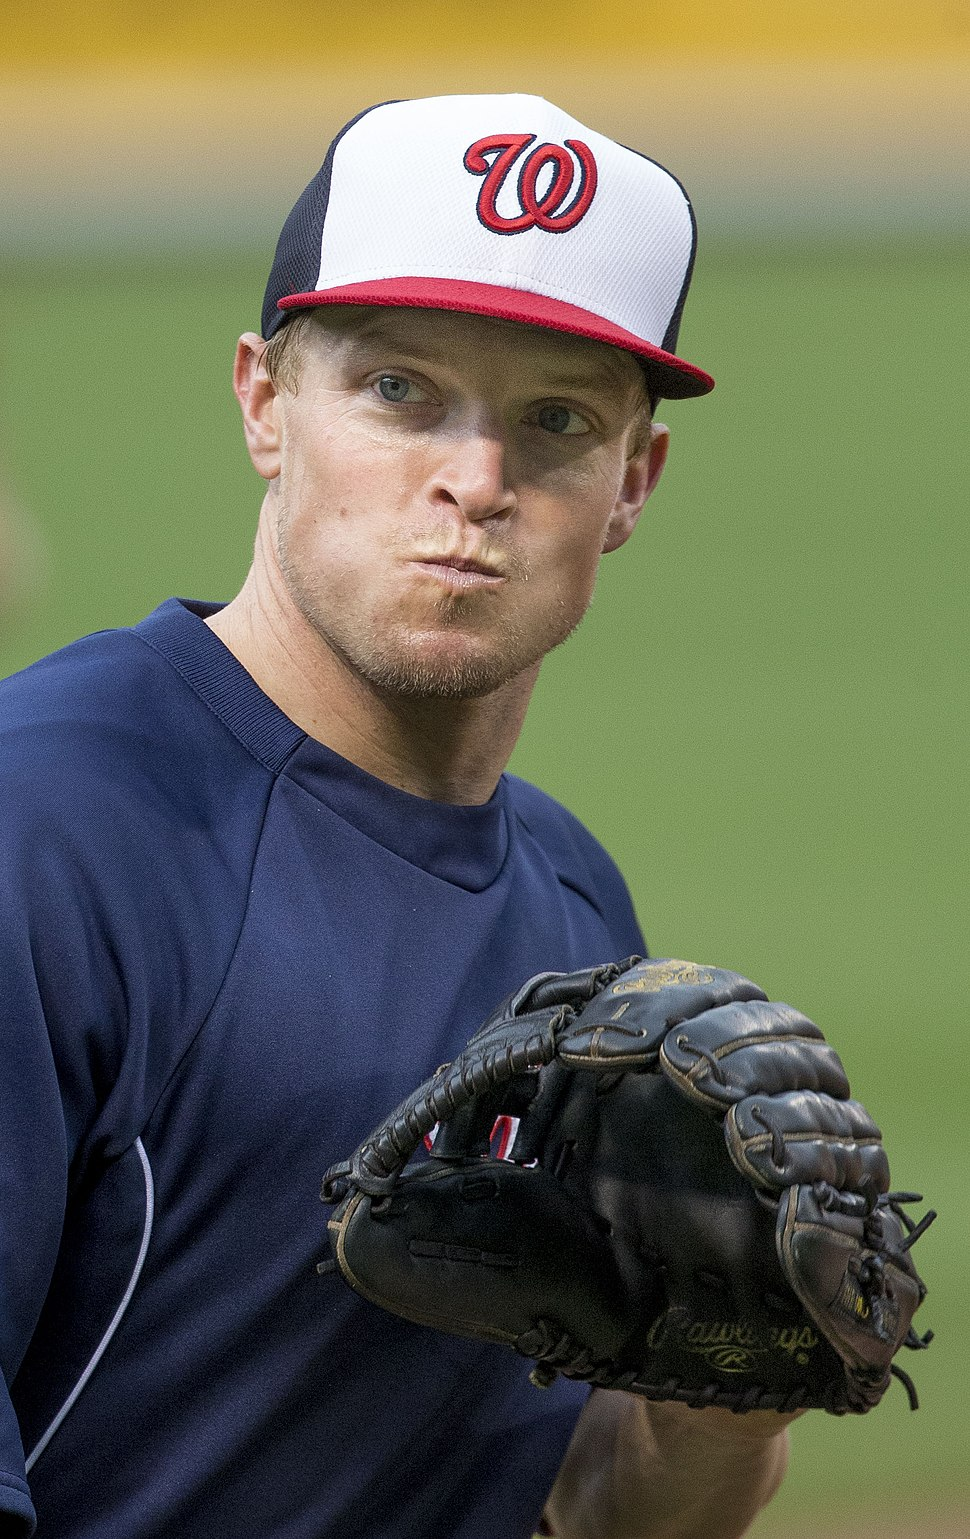 Nate McLouth on July 9, 2014